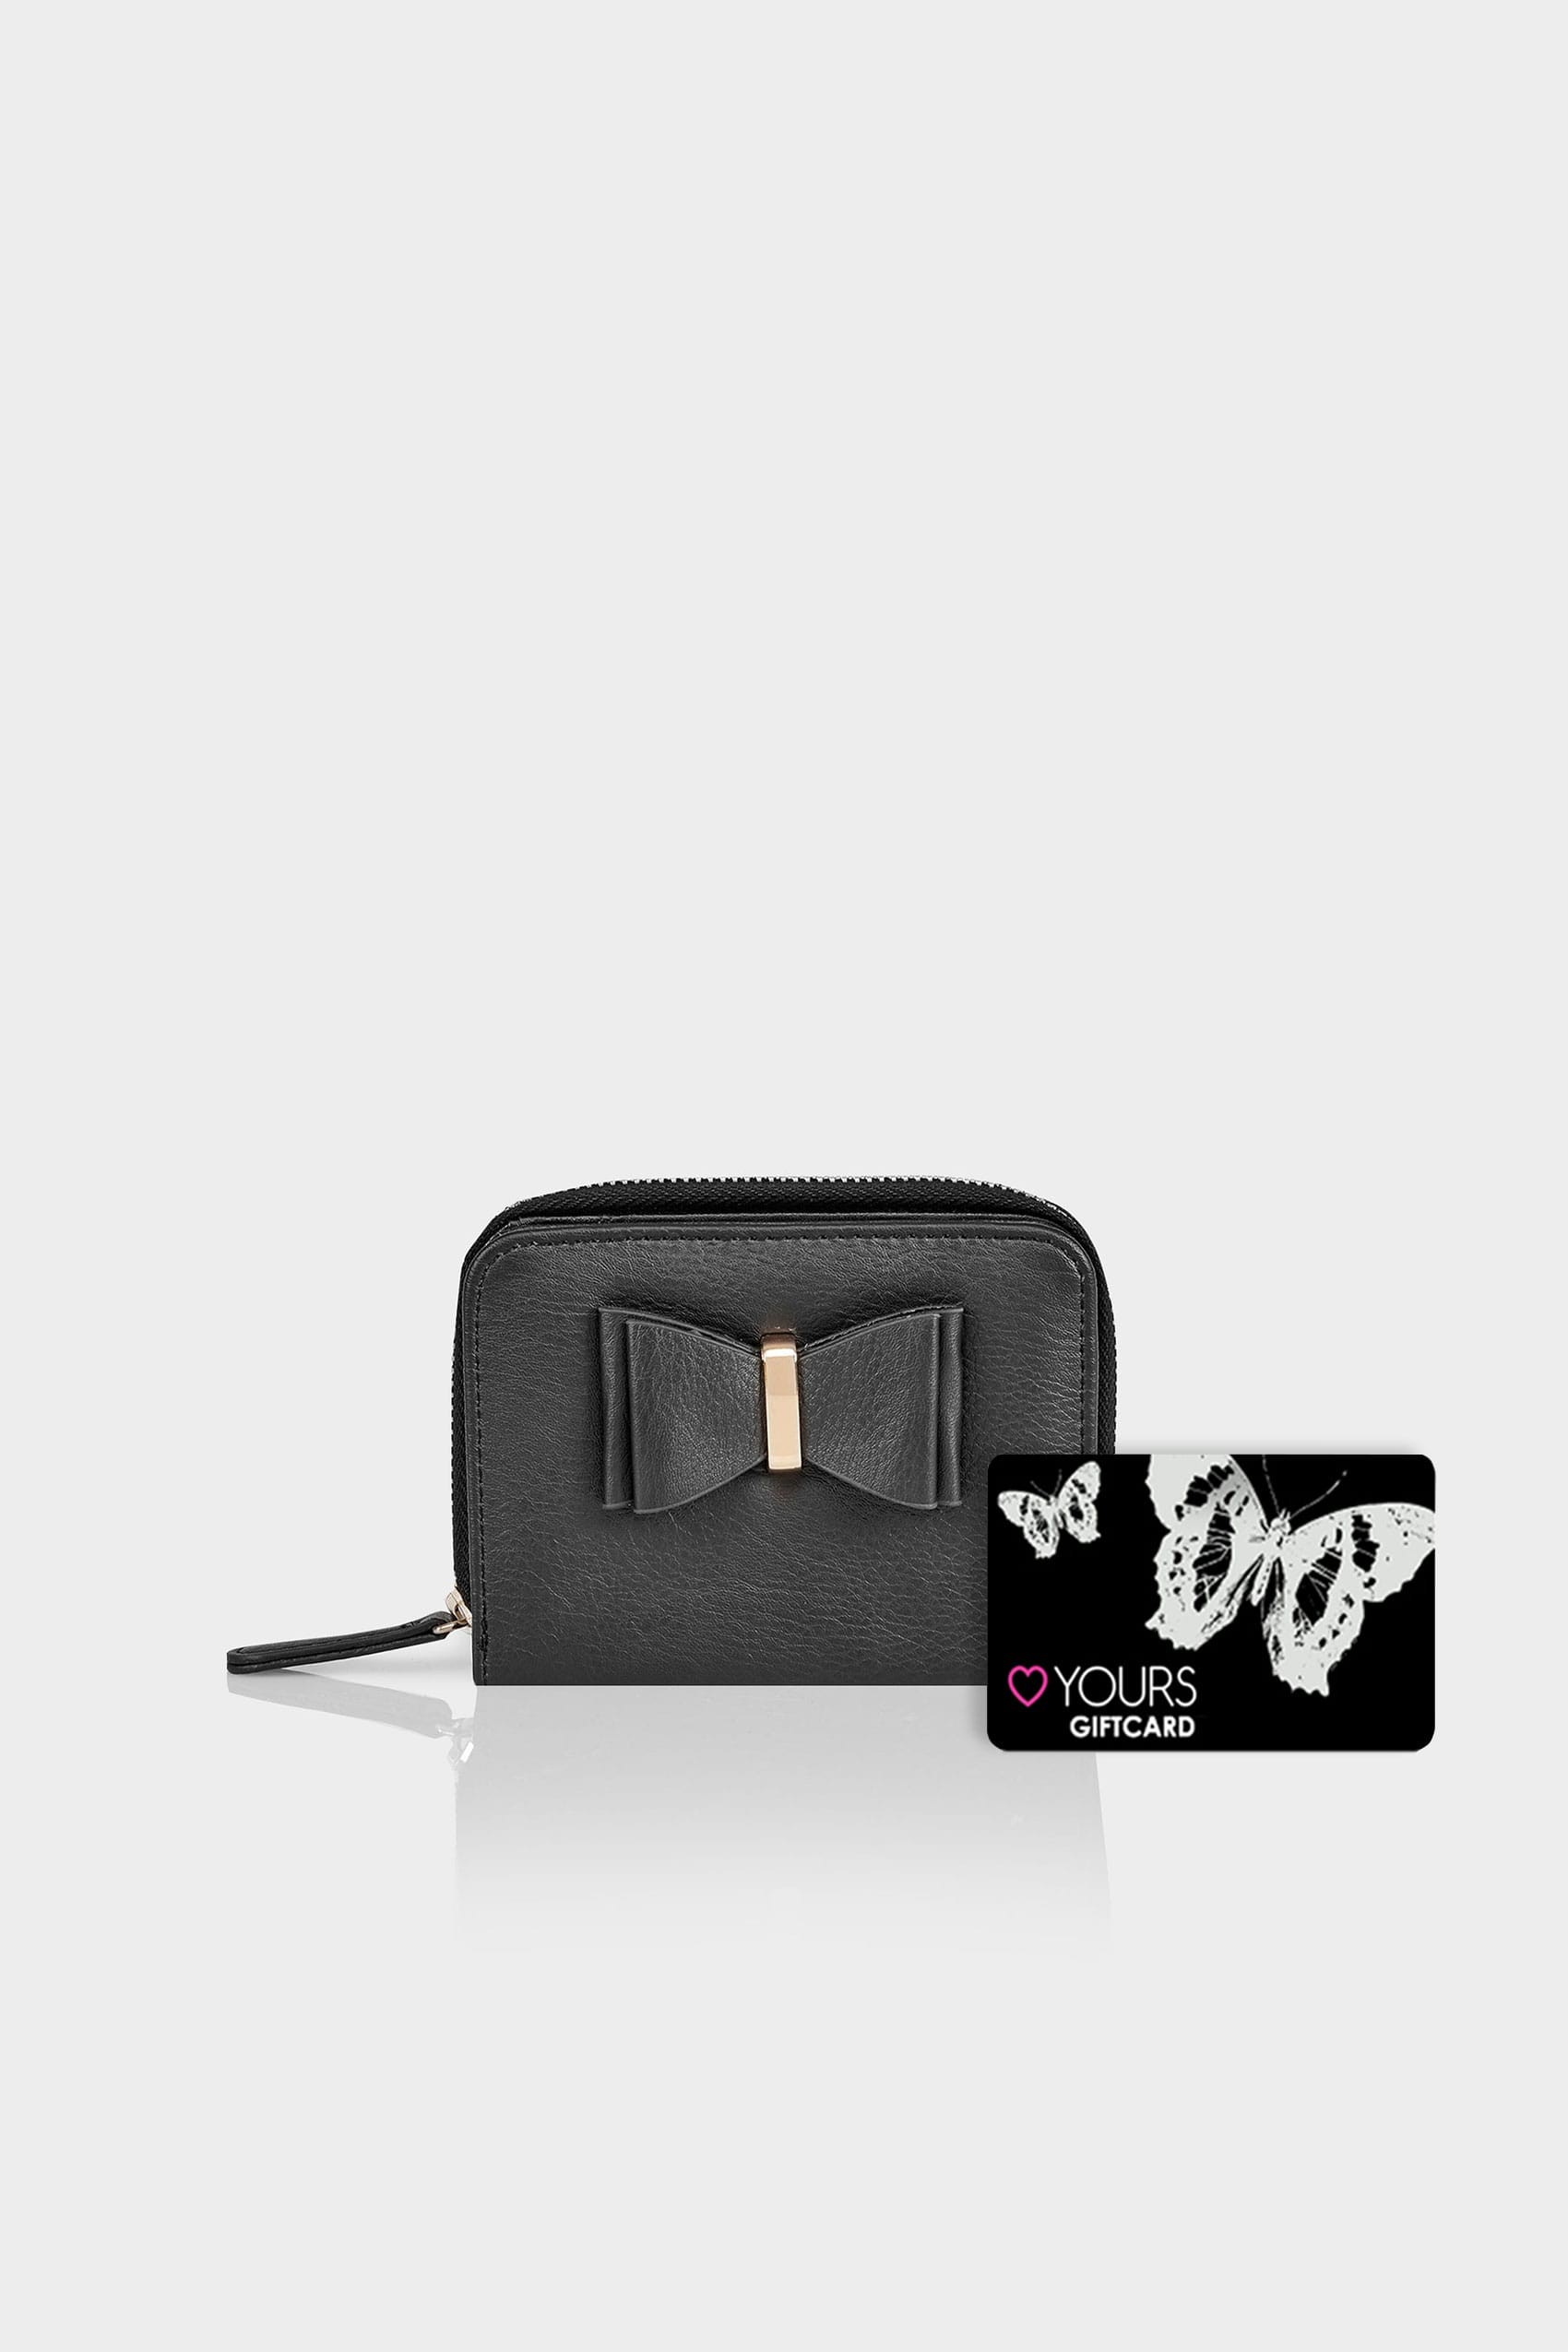 american express gift card zip code black purse with bow front detail 662